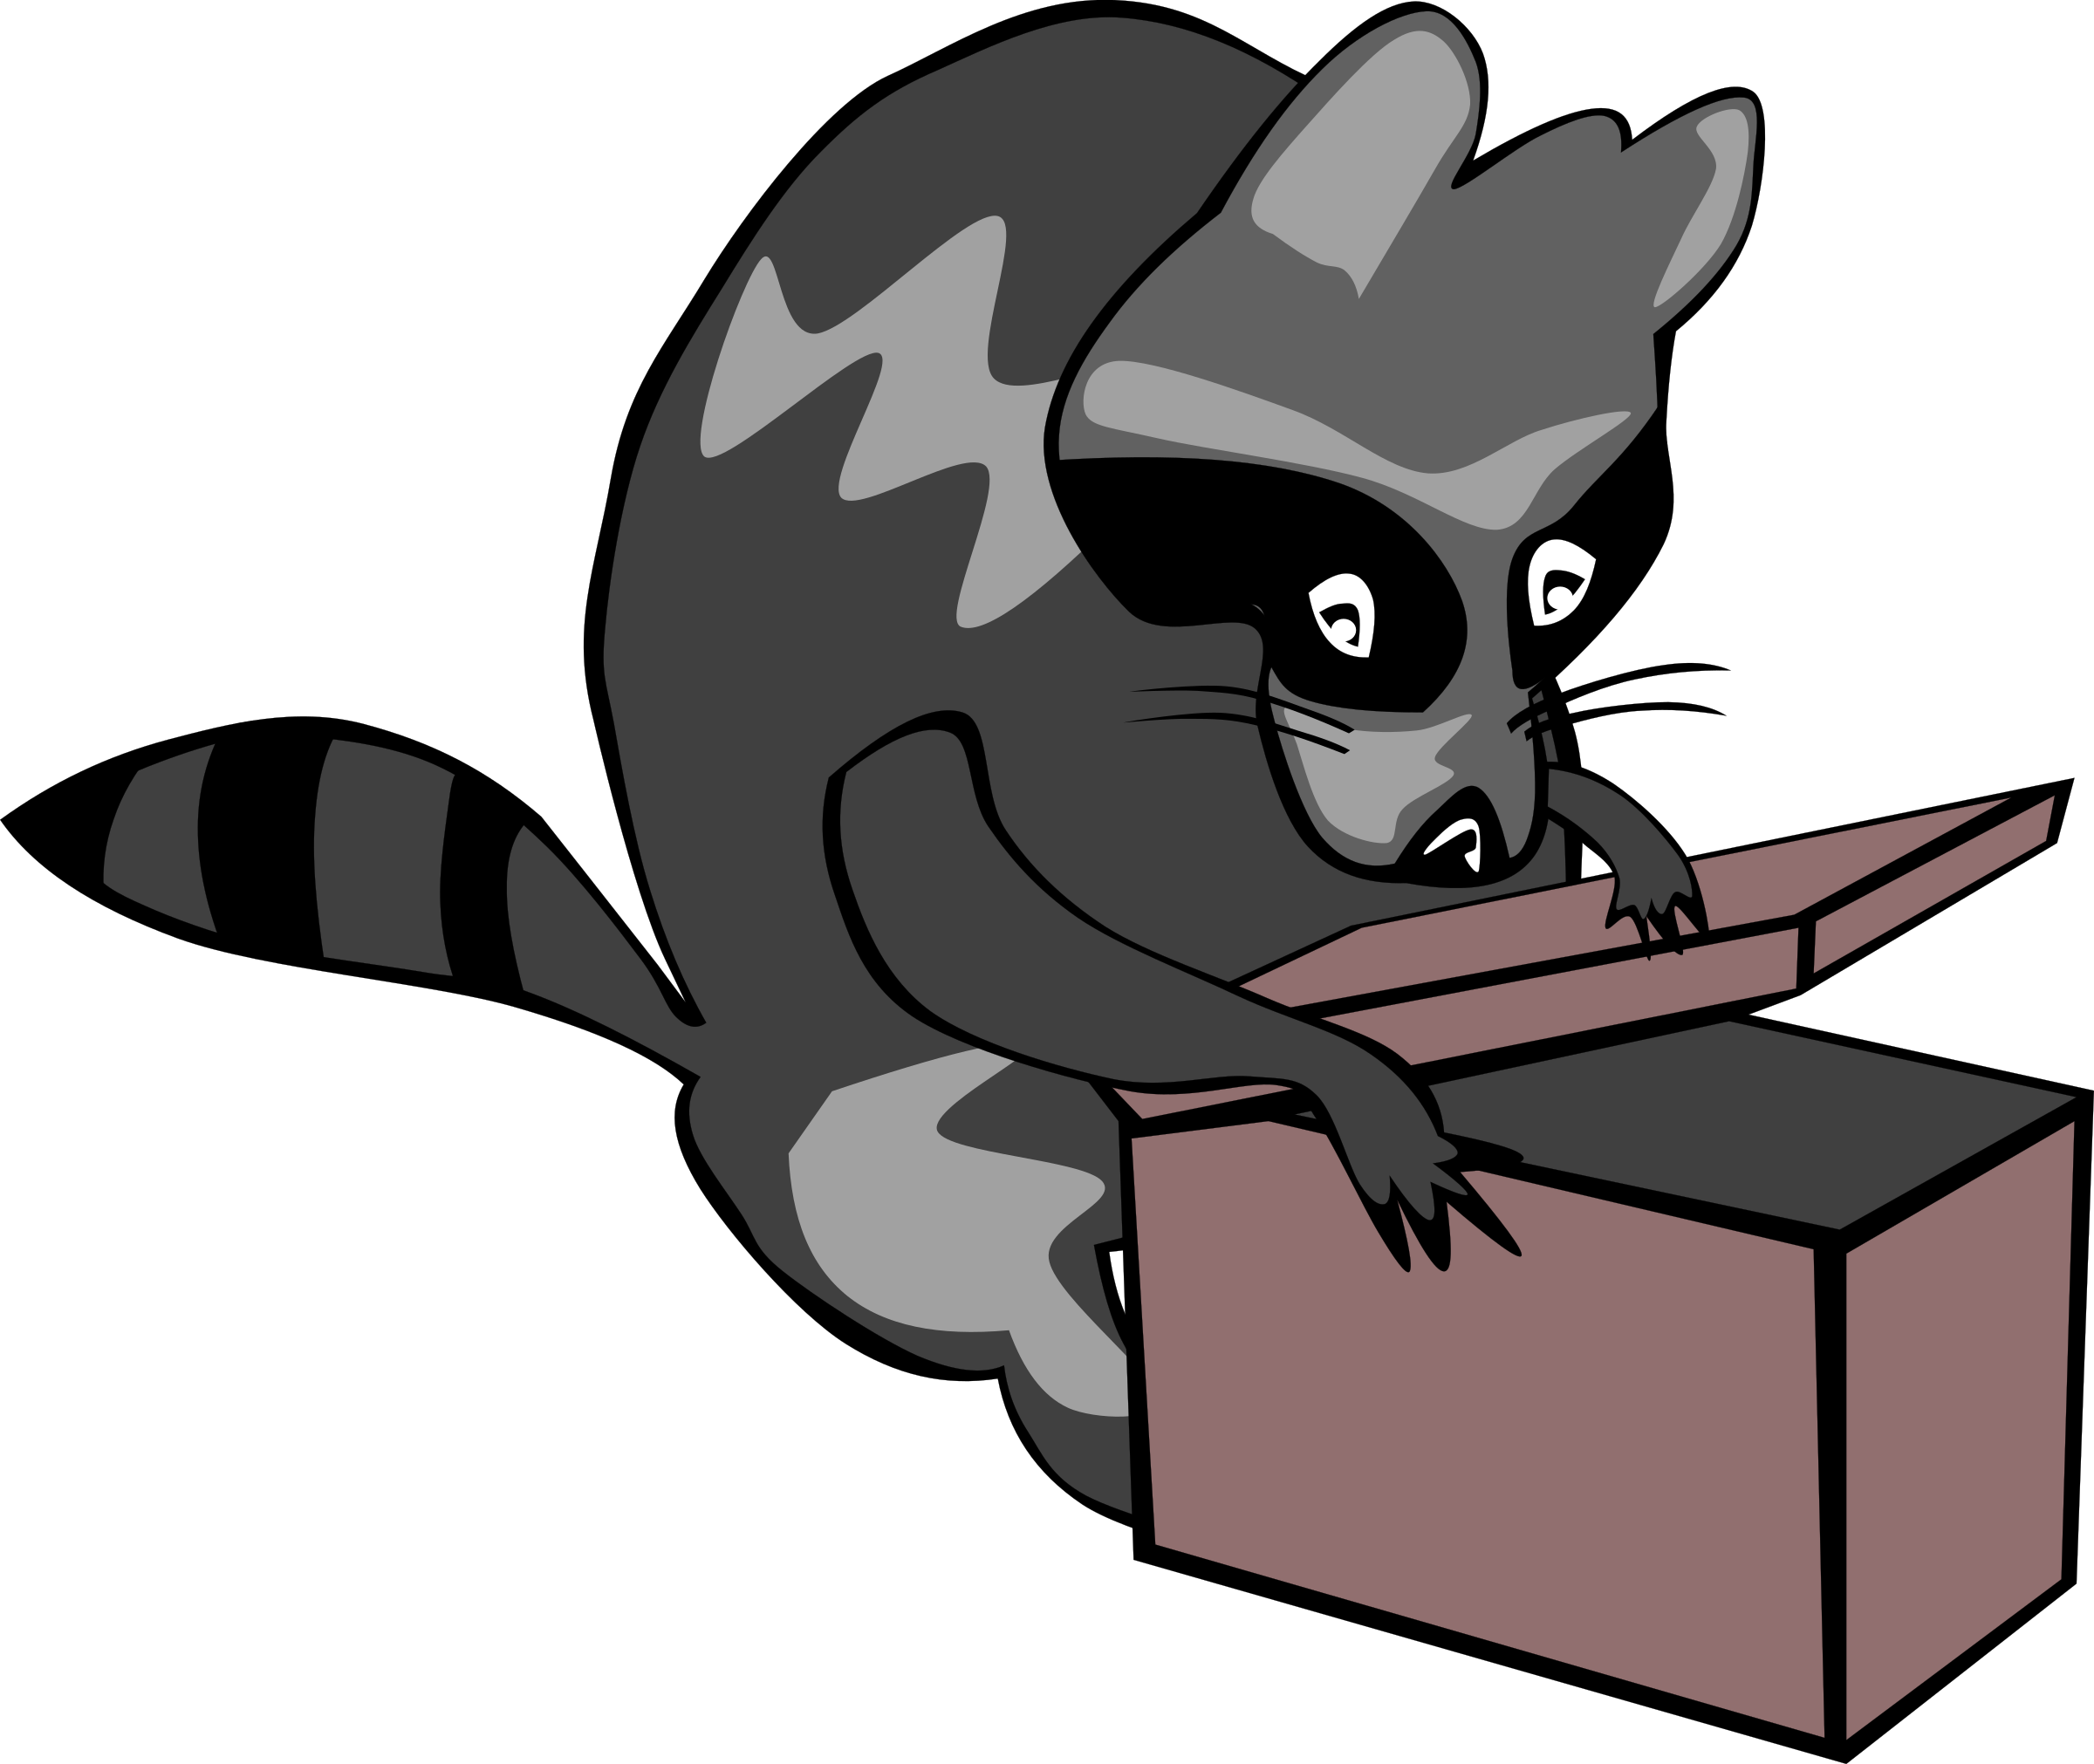 Raccoon opening box by Gerald_G